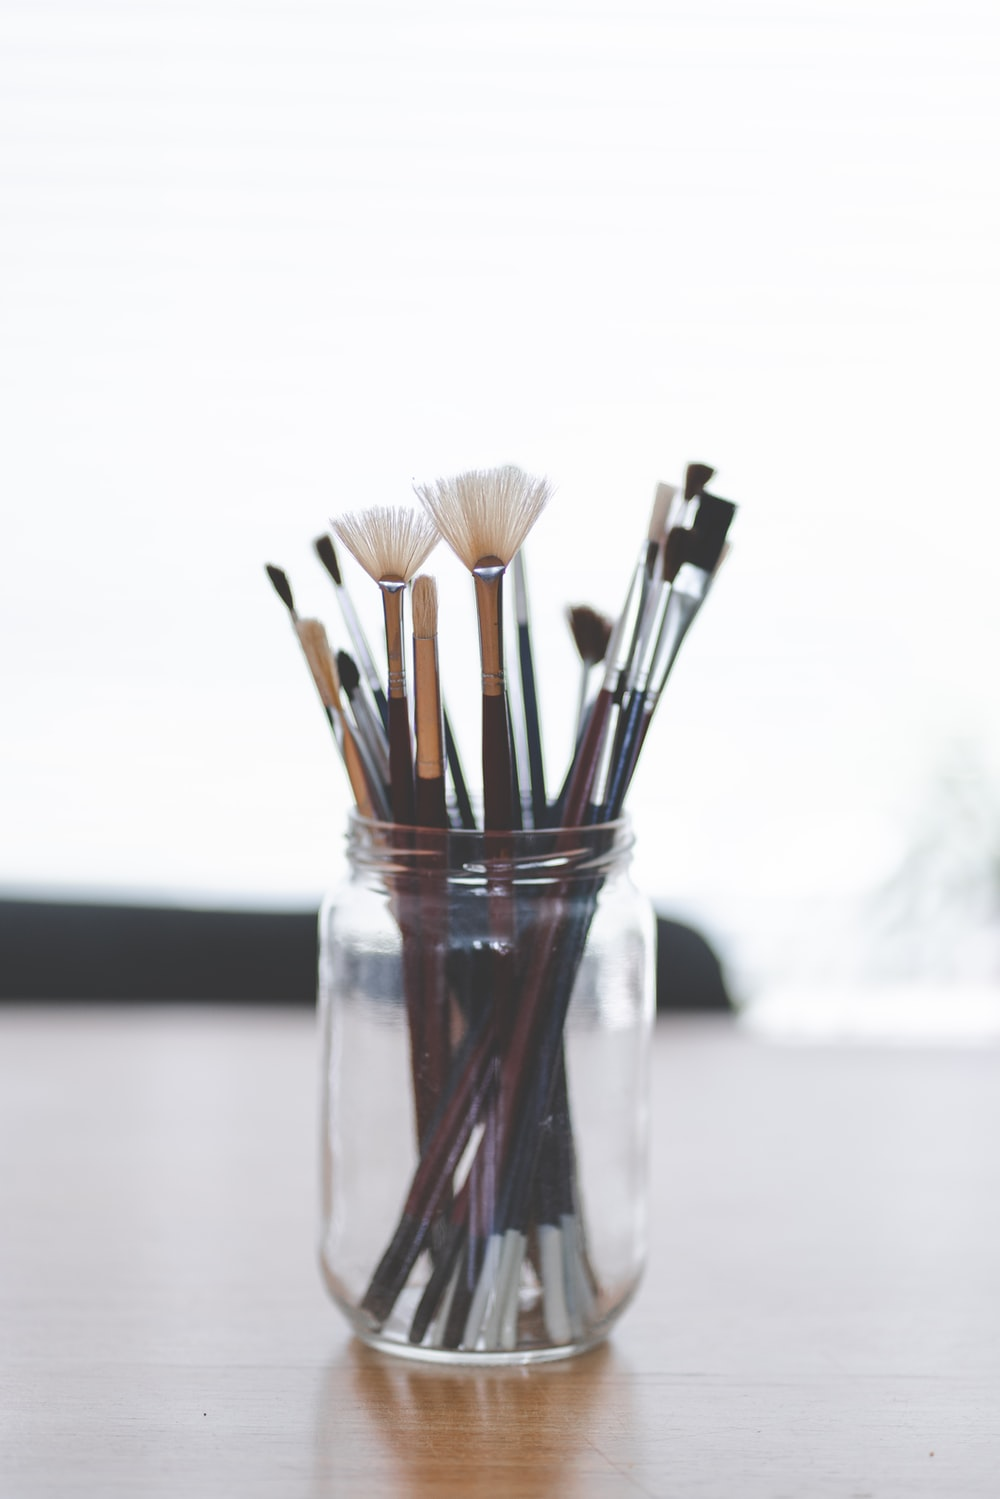 brown and black makeup brush set in clear glass jar